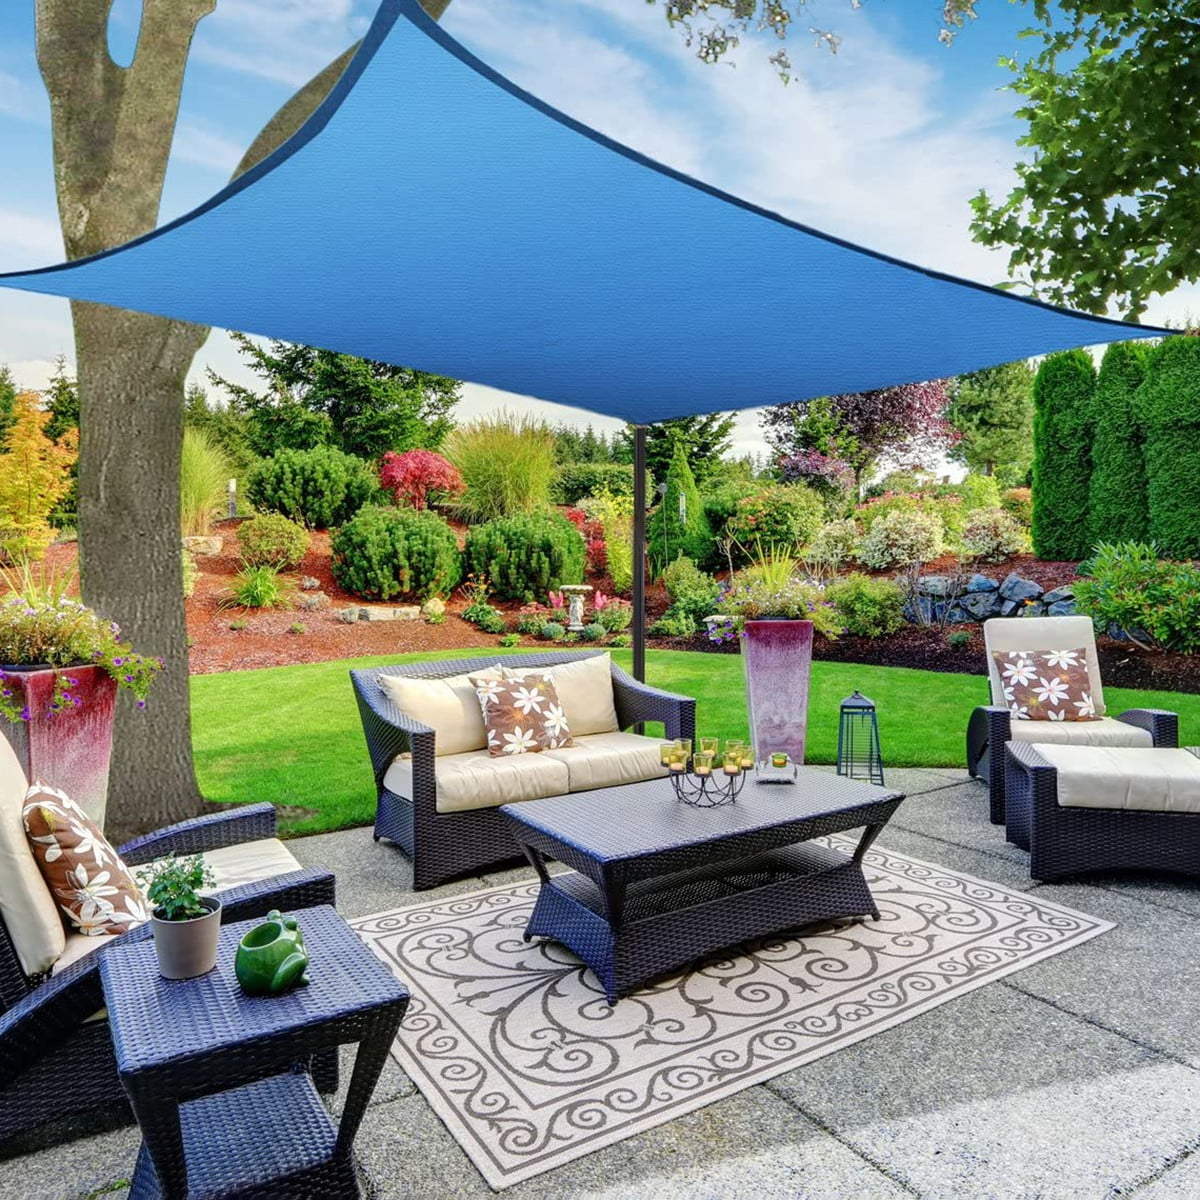 Details about  /Sun Shade Sail Sunshade Rectangle Patio Backyard Canopy Awning UV Block Cover A